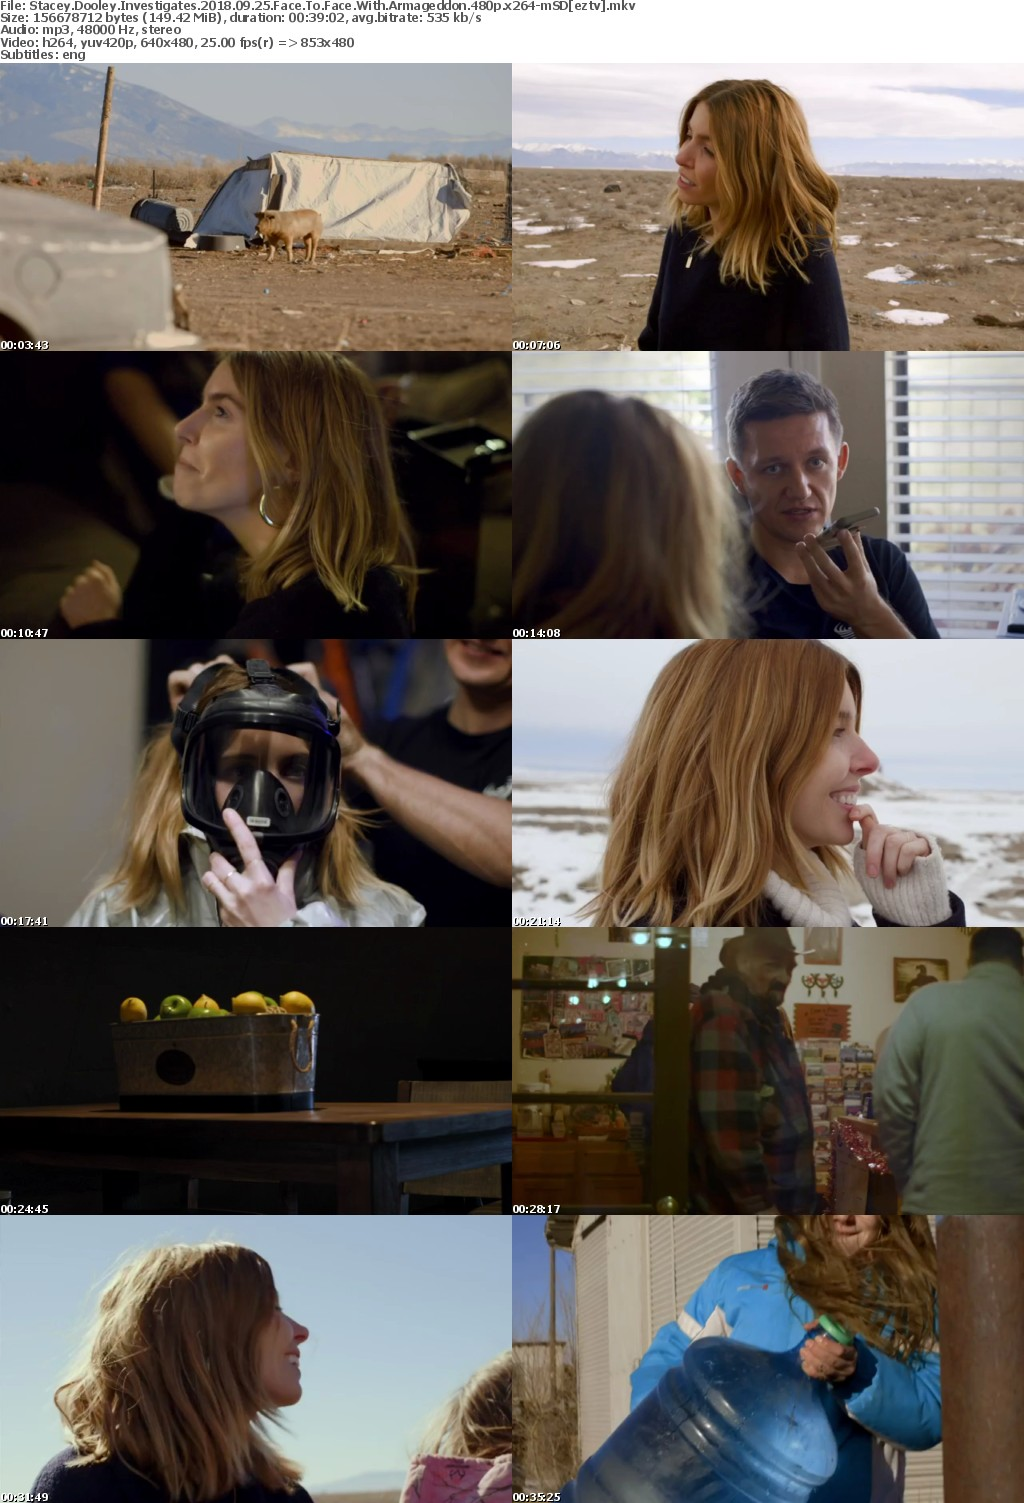 Stacey Dooley Investigates 2018 09 25 Face To Face With Armageddon 480p x264-mSD